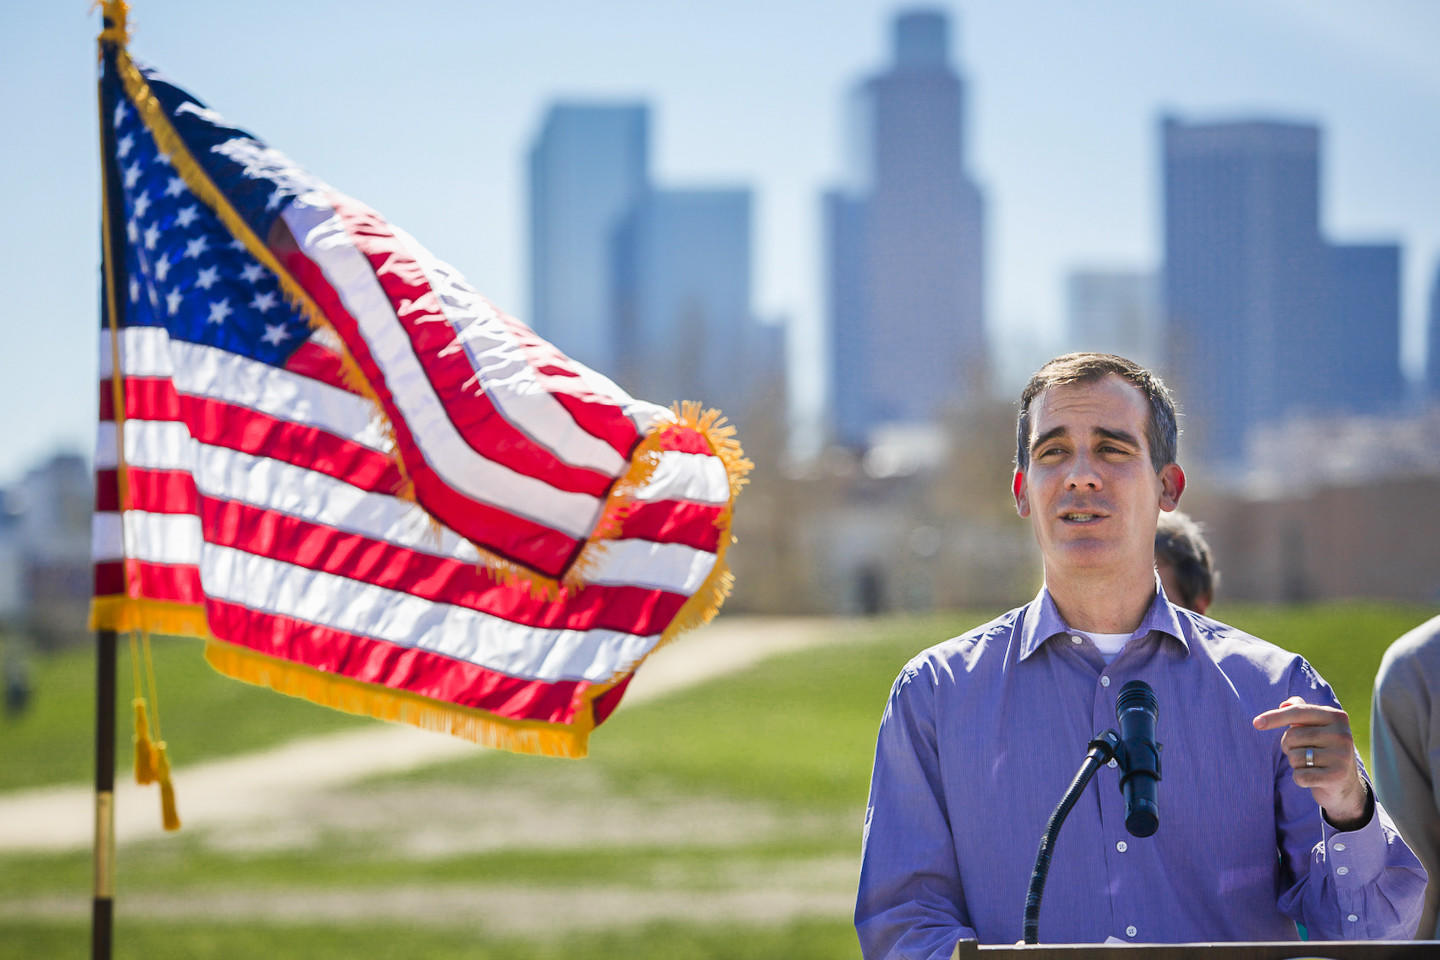 Los Angeles Mayor Eric Garcetti, shown at a news conference last month, will deliver his first State of the City address Thursday. The speech will be closed to the public, but can be viewed live online, officials said.